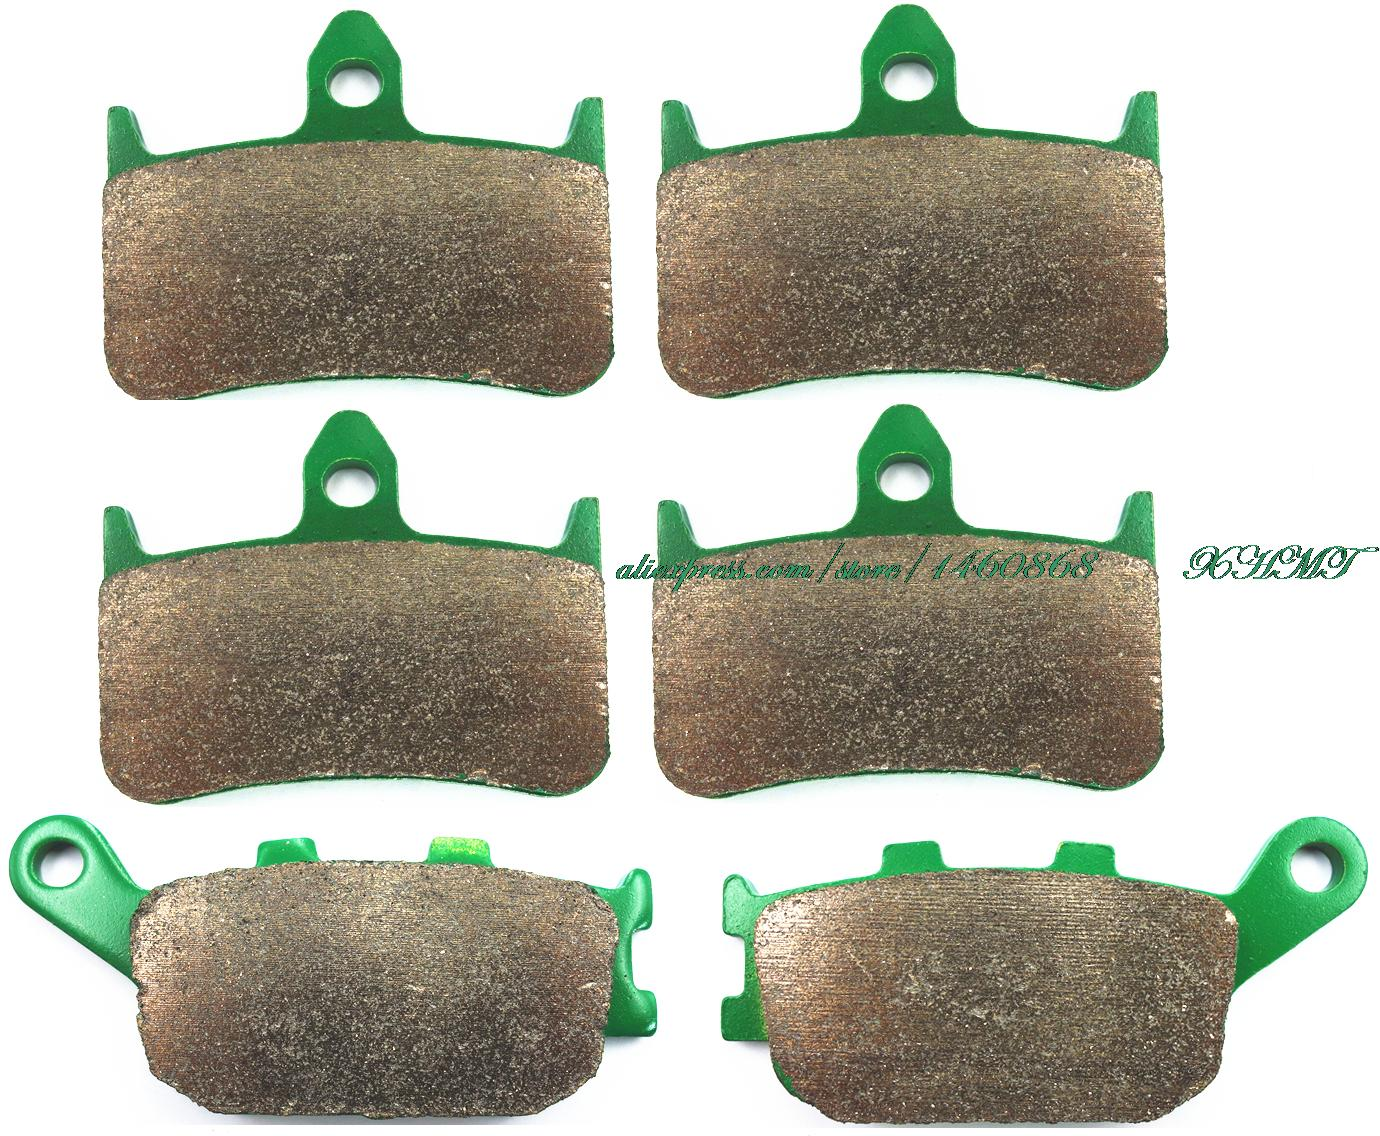 Brake Shoe Pads Set For Honda Cb1000sf Cb1000 Cb 1000 Sf/ Cbr1000 Cbr1000 Cbr 1000 Big One 993 1994 1995 1996 1997